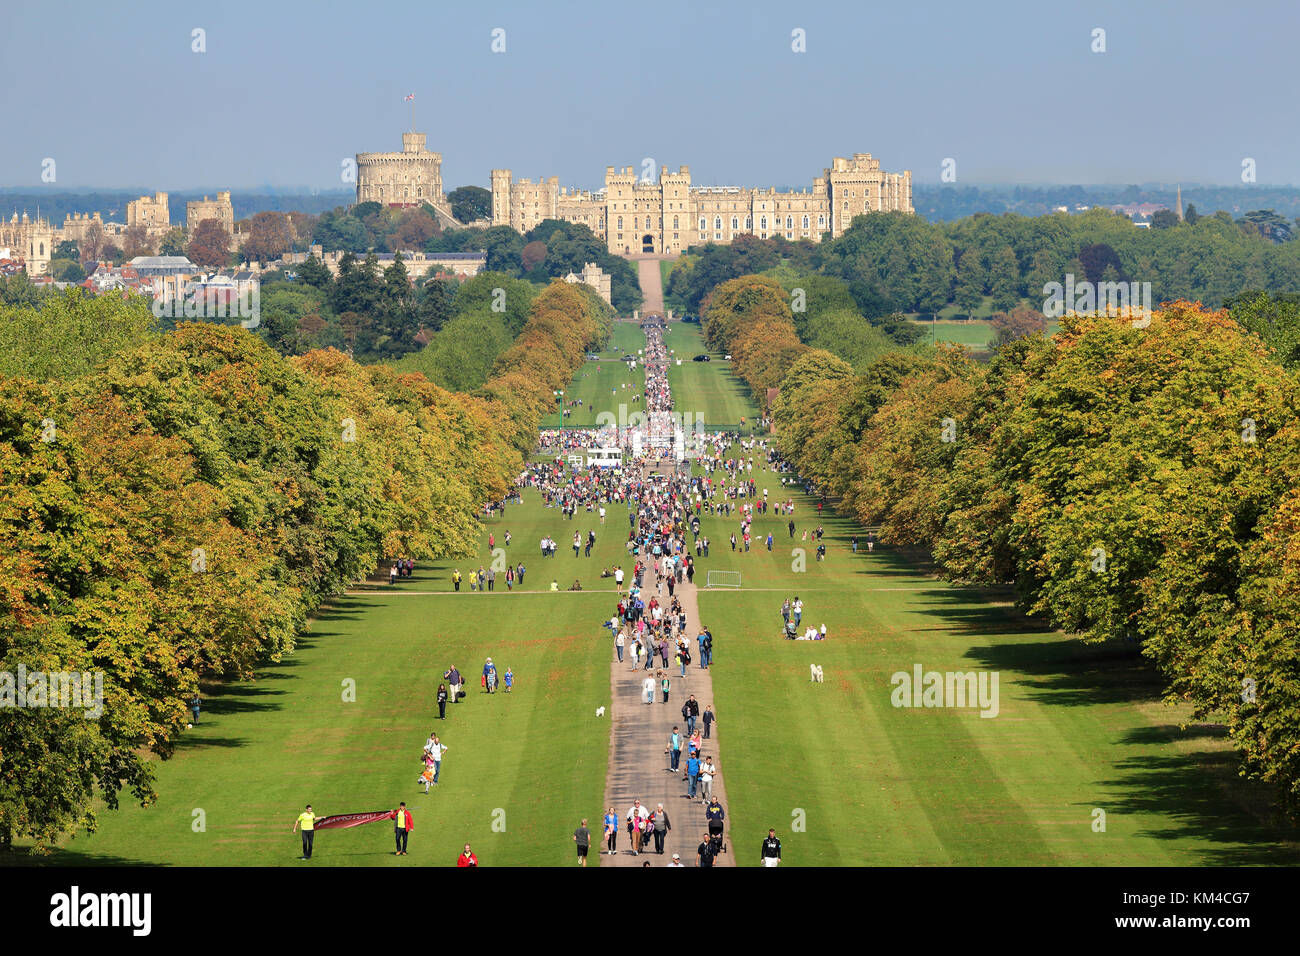 Runners in a Charity Half Marathon in Windsor Great Park, Berkshire with Windsor Castle in the background - Stock Image